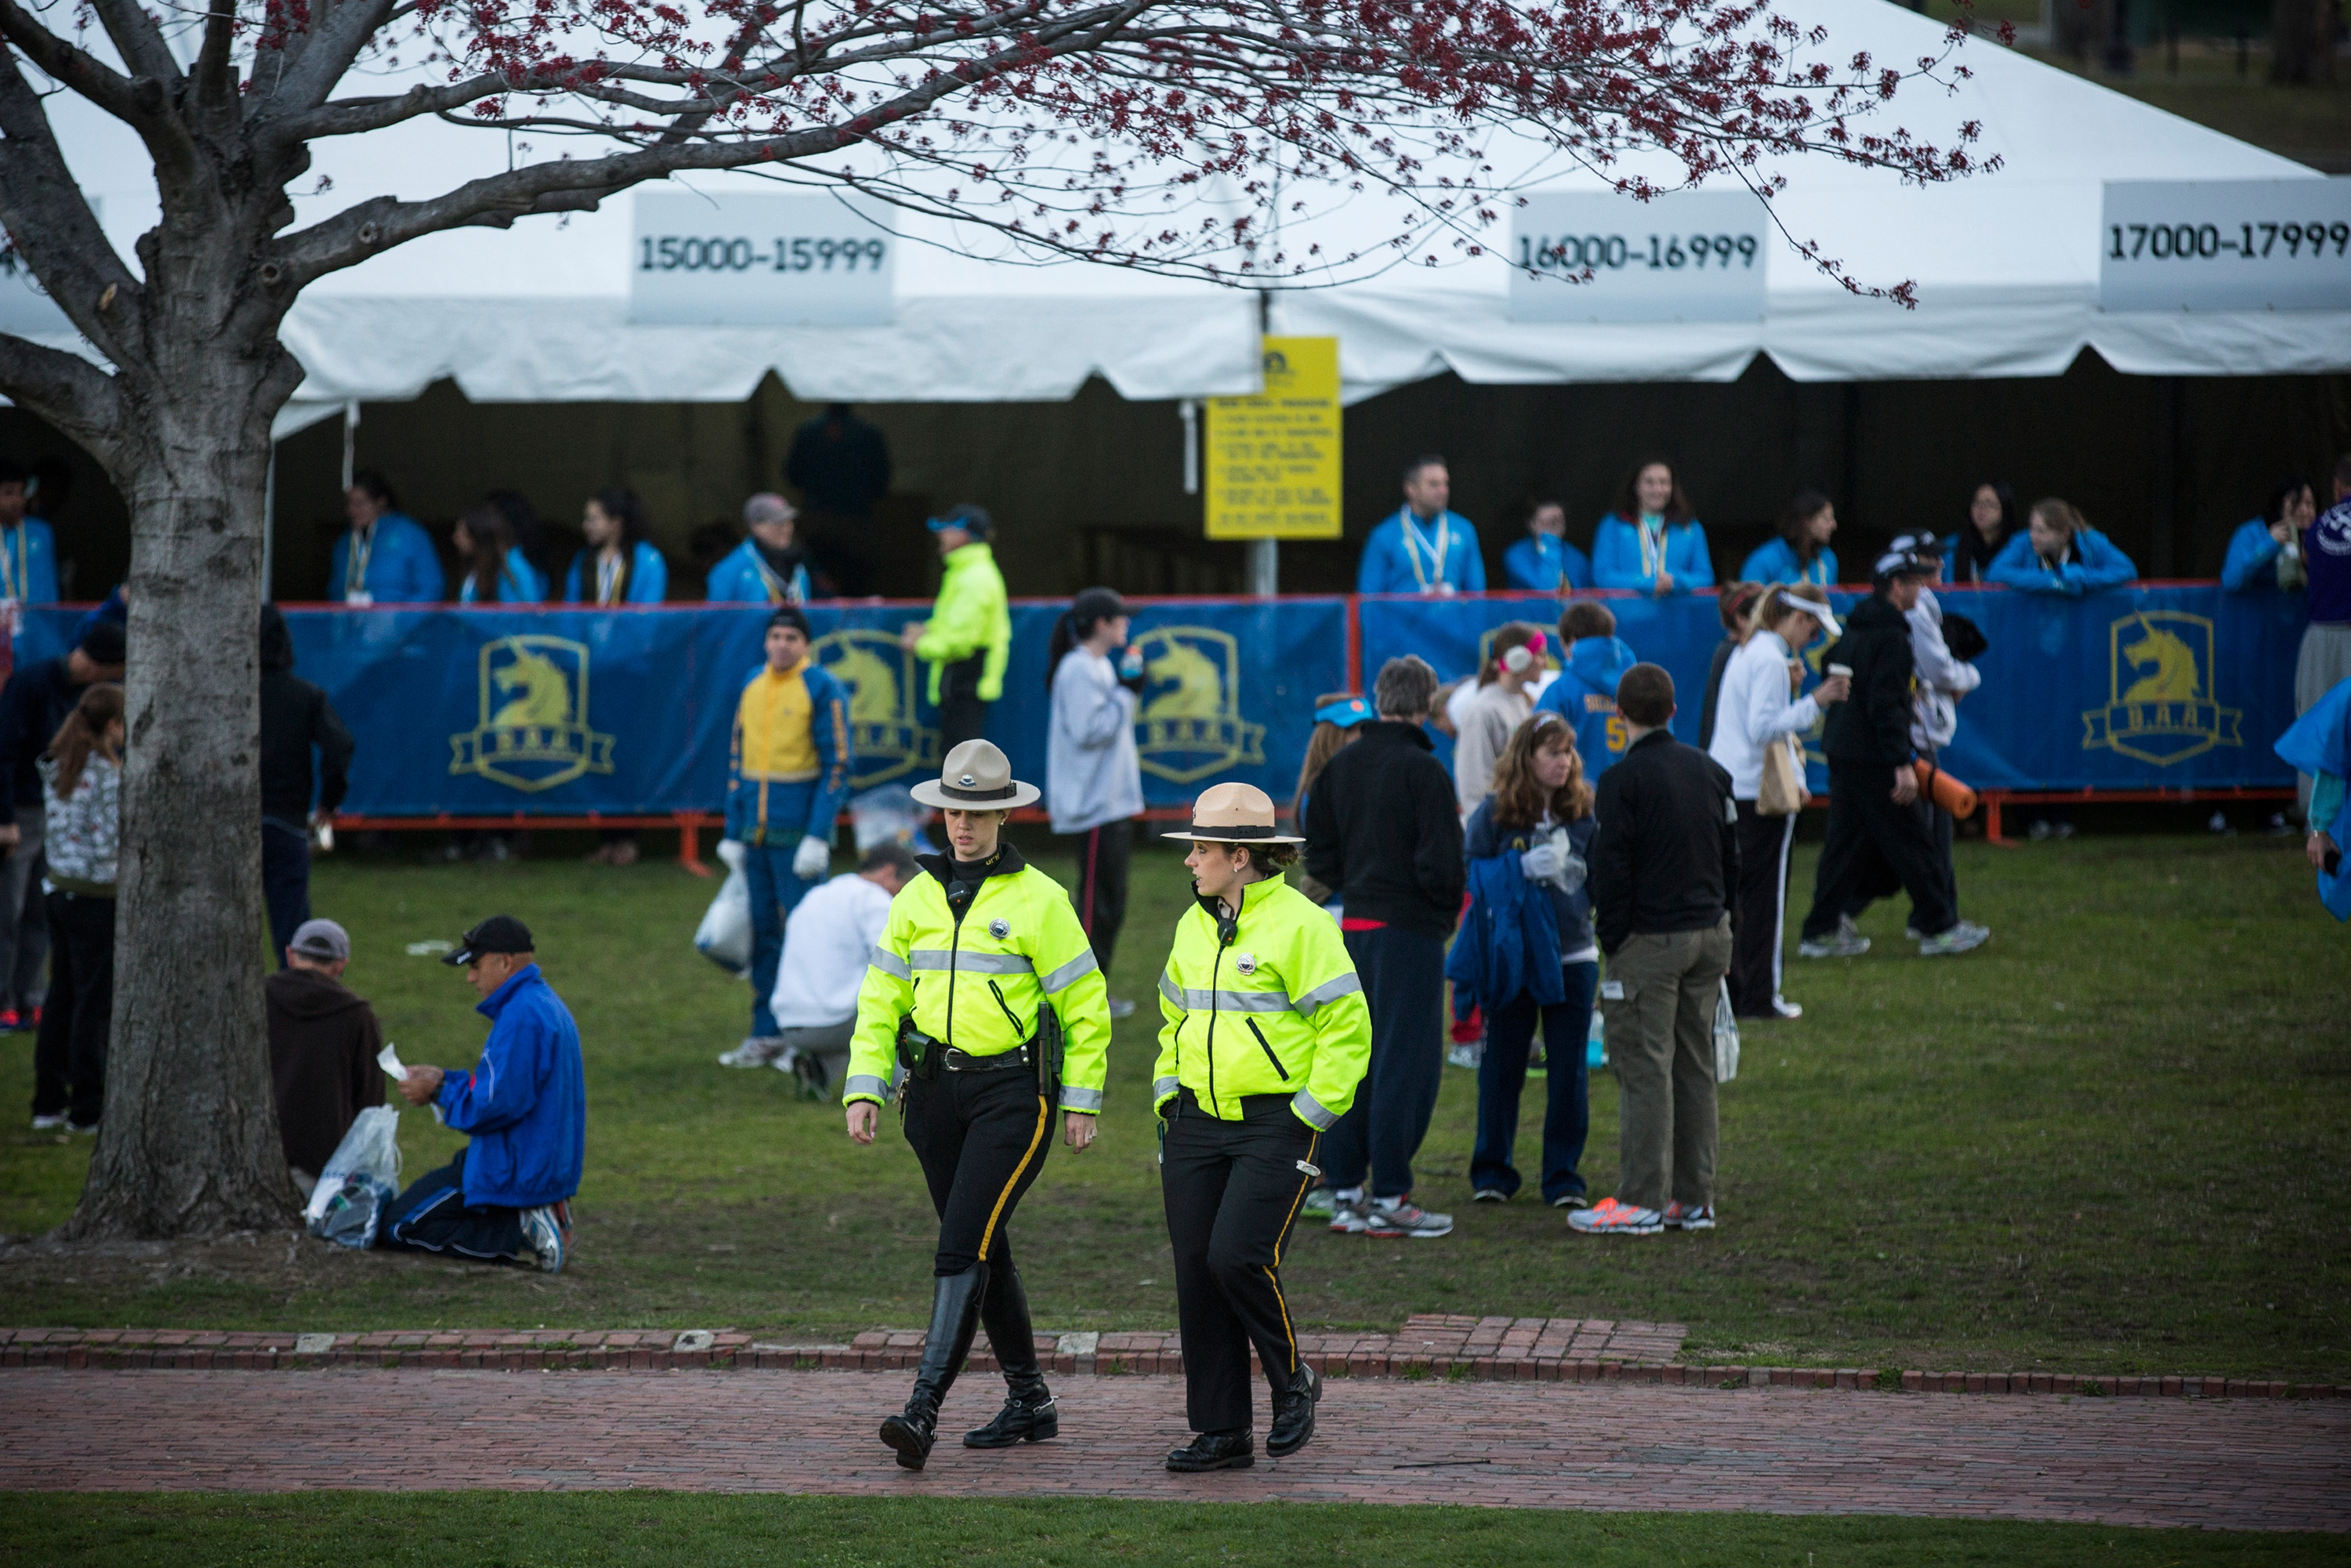 Police officers monitor the area as runners prepare for the marathon in Boston Common. A year after the terrorist bombings, a far greater security presence is clearly visible.